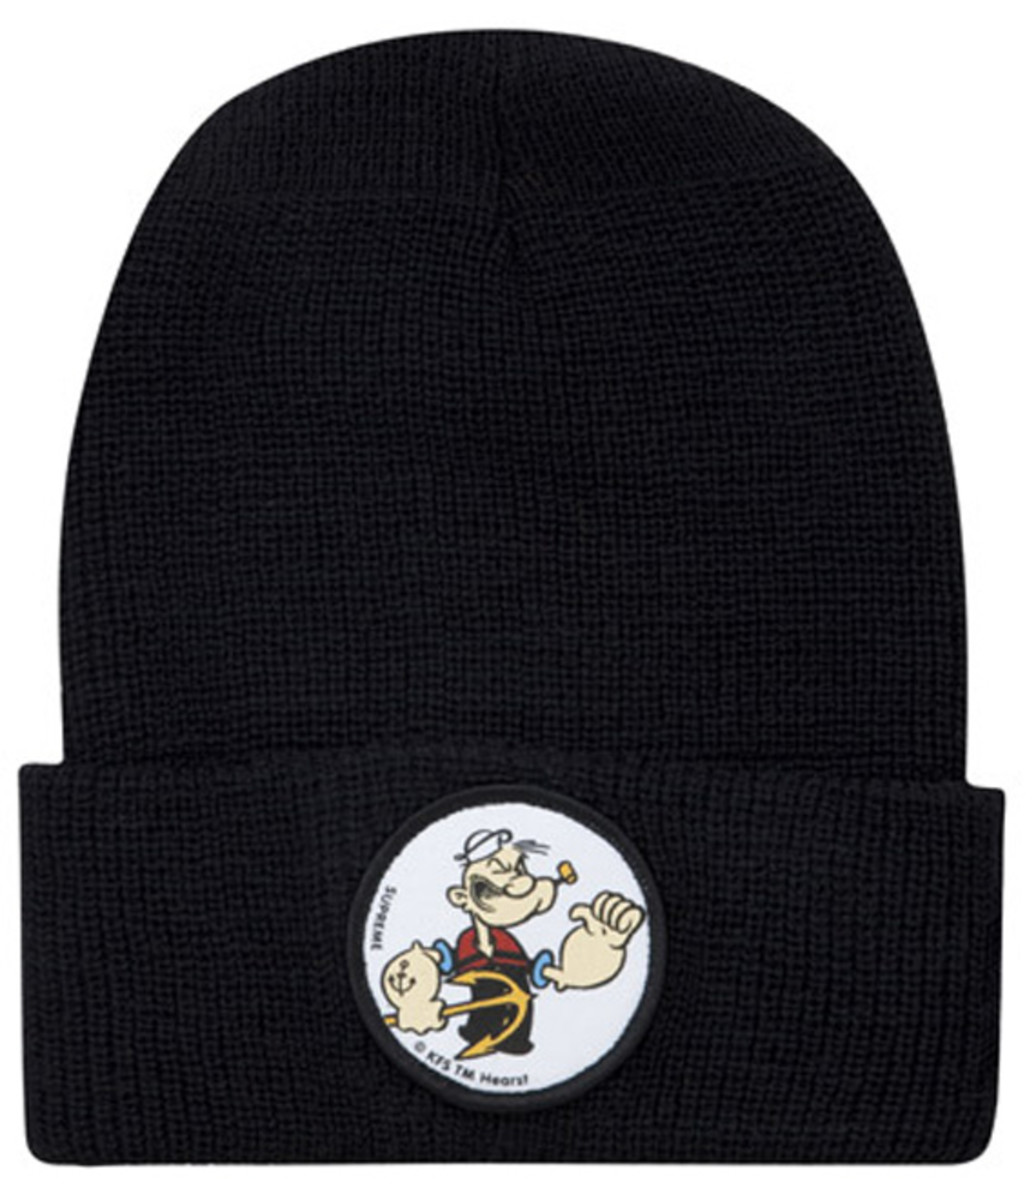 Supreme popeye 2010 collection beanie